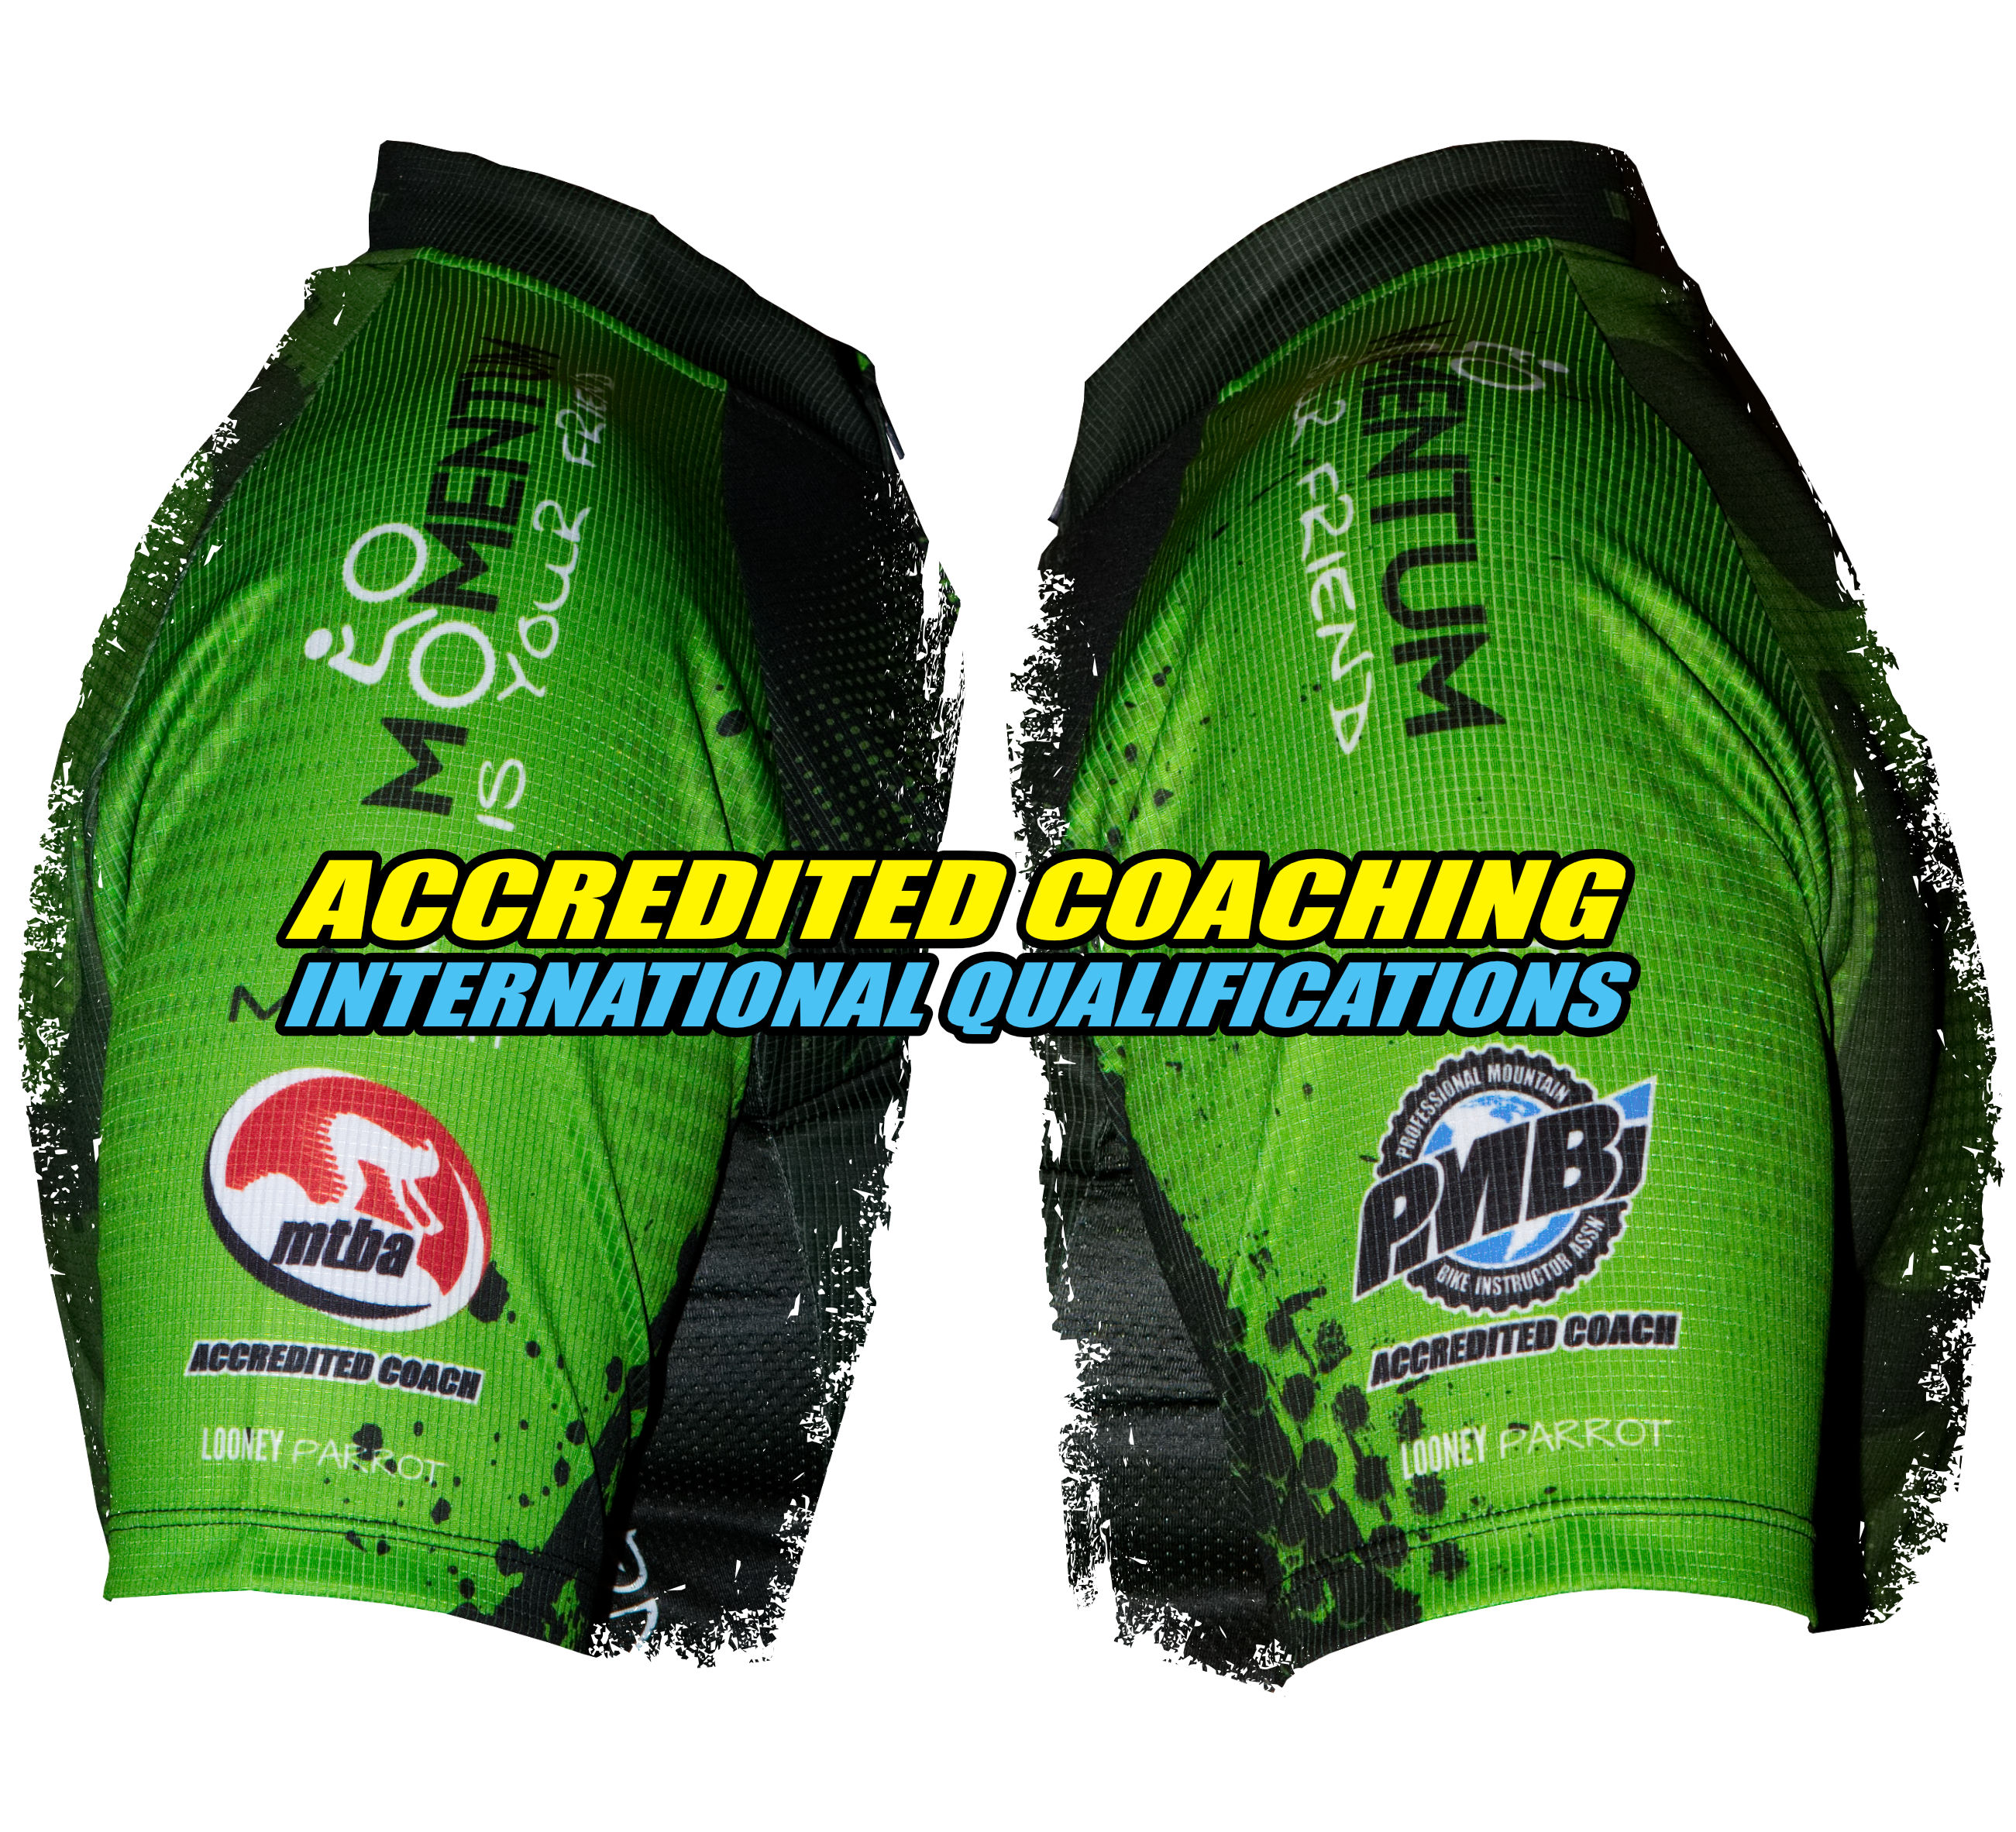 PMBIA MTBA MTB Coaching Qualifications Courses Accredited Acreditation